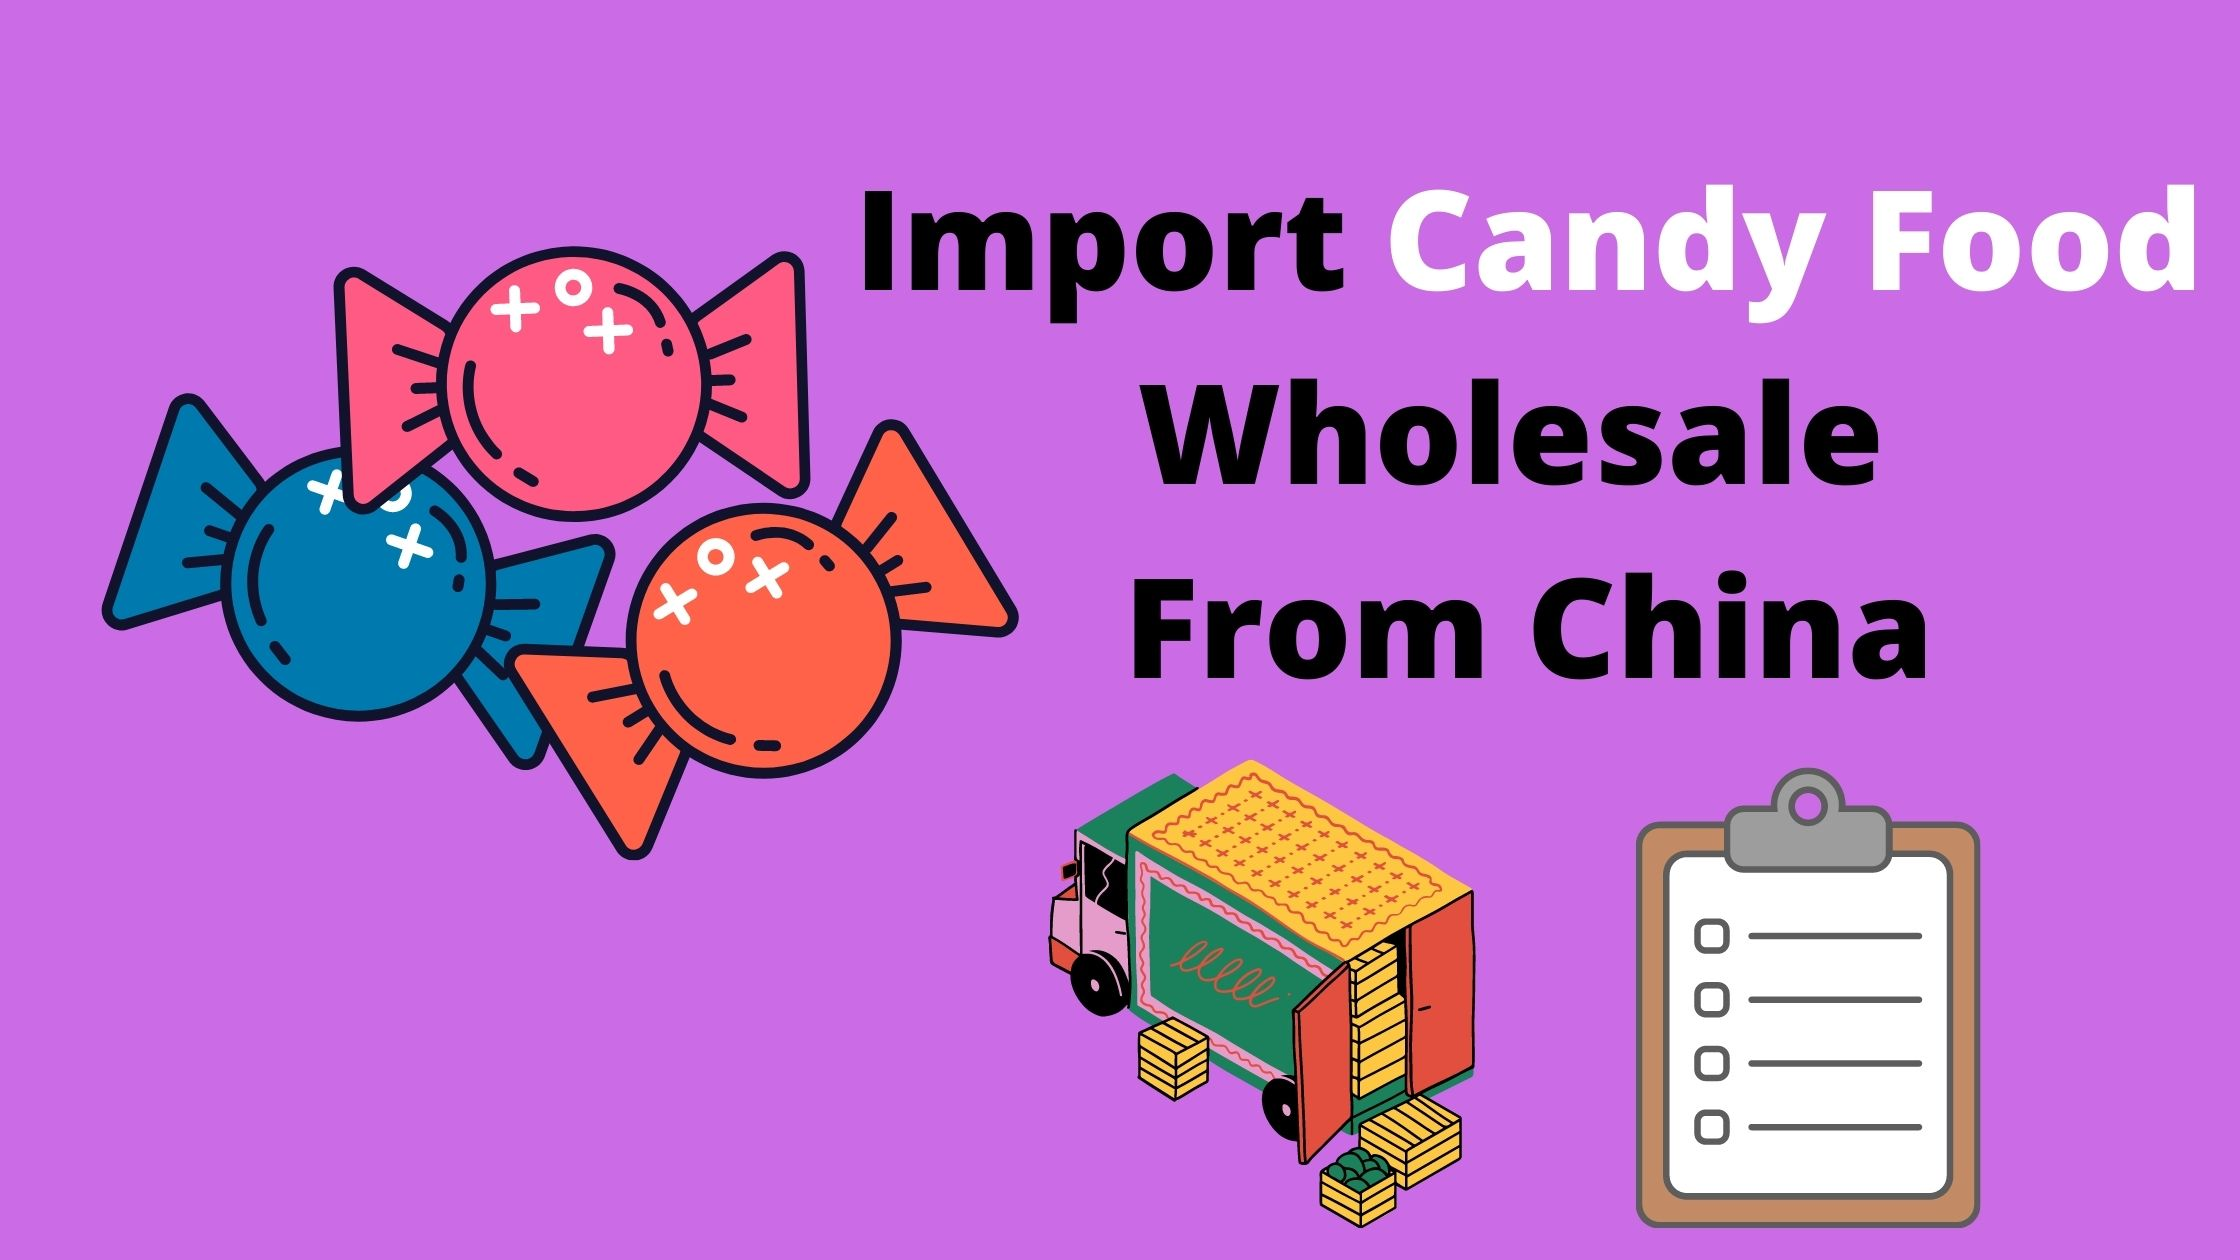 Import Candy Food Wholesale From China